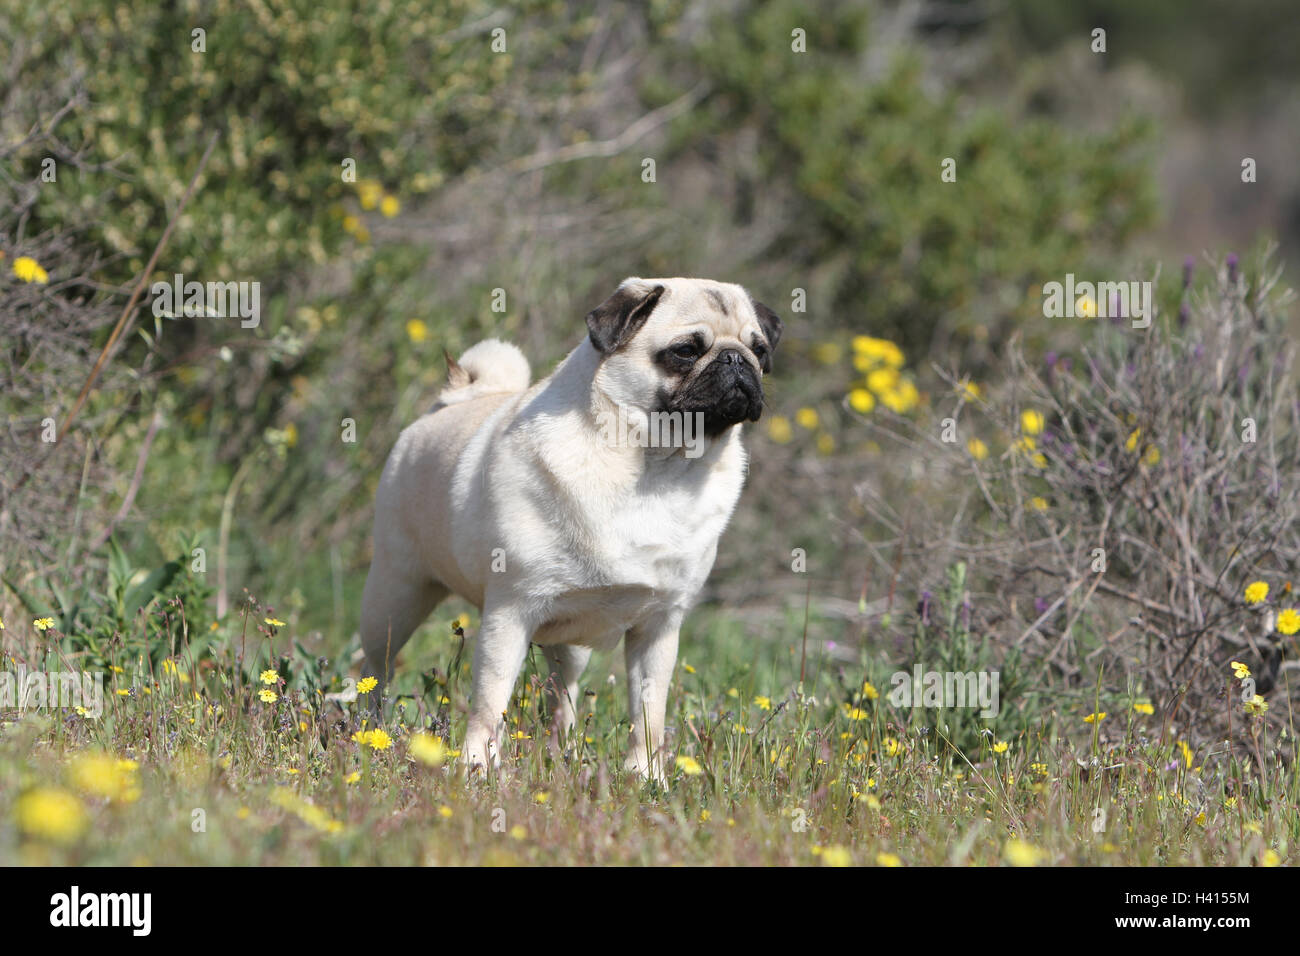 Dog Pug / Carlin / Mops adult fawn Grey gray standing flower flowers in the wild meadow bloom - Stock Image